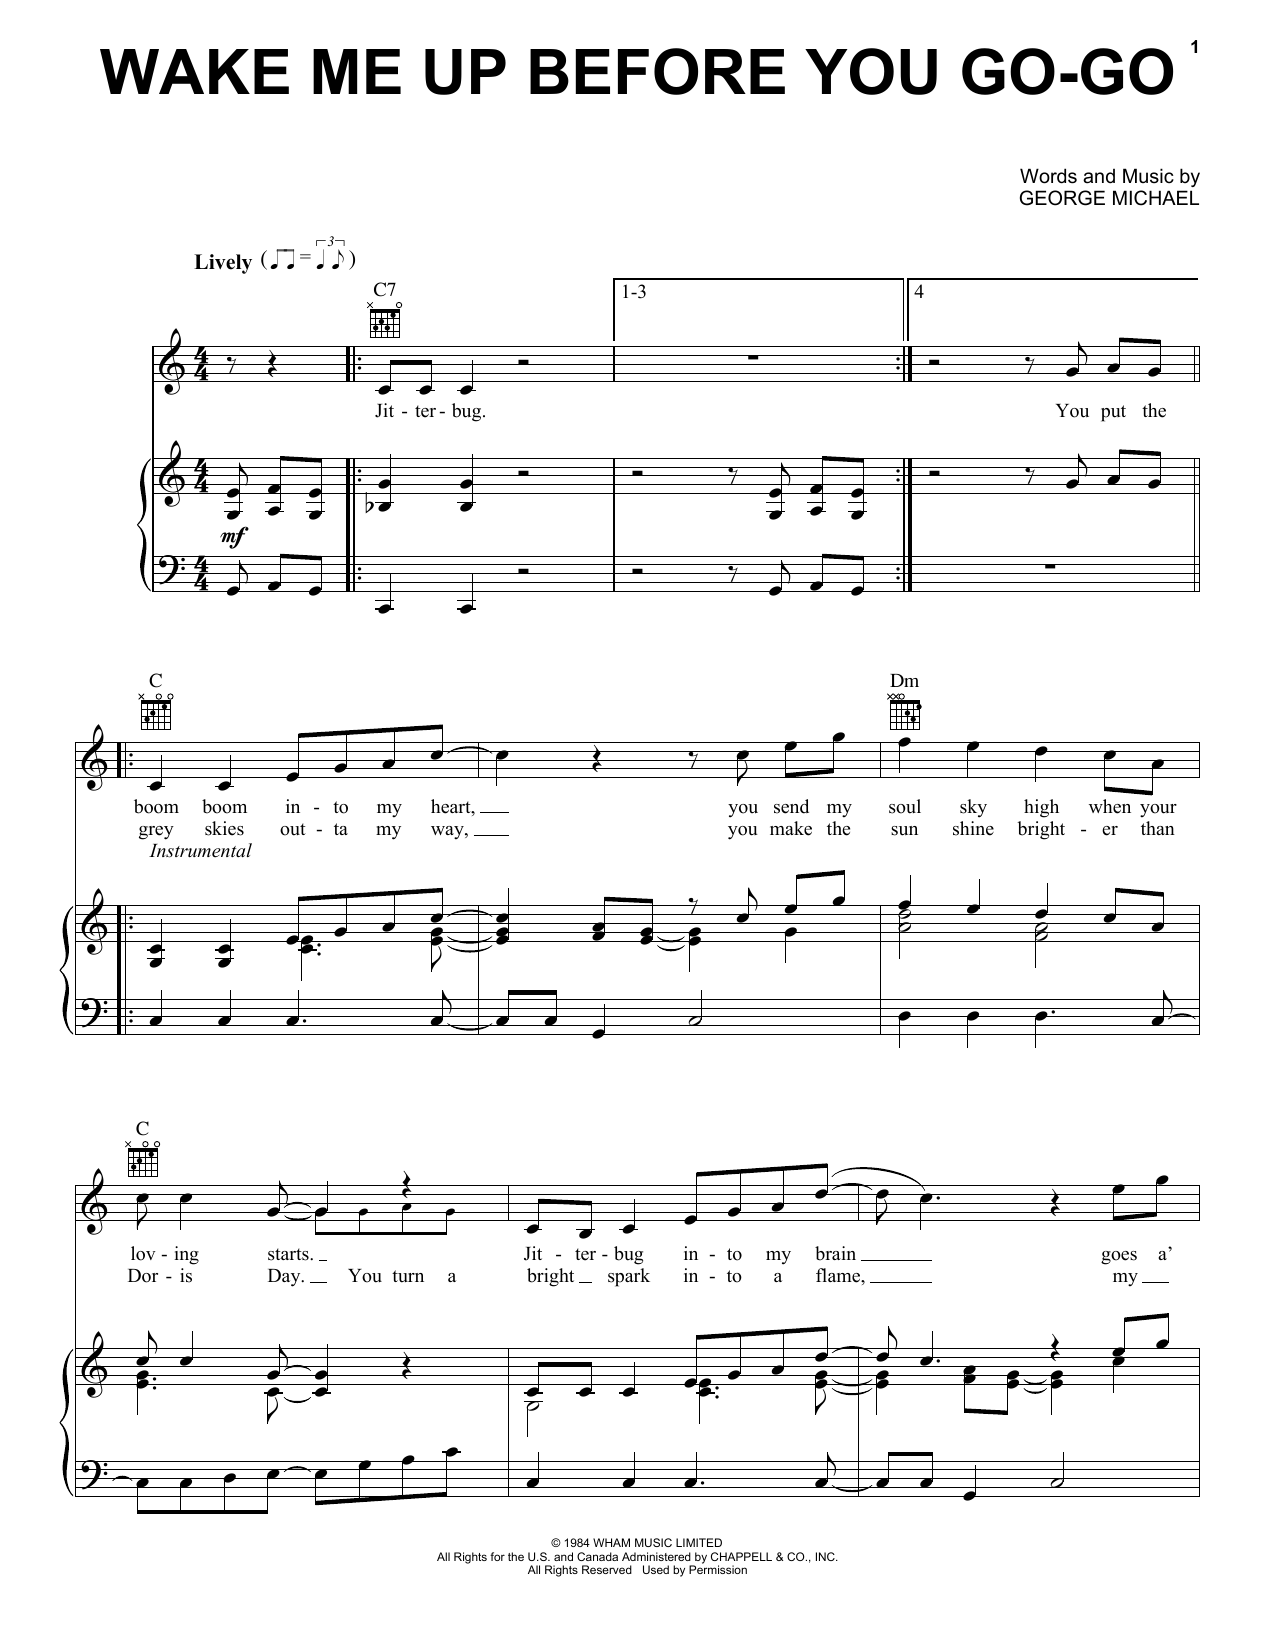 Wham! Wake Me Up Before You Go-Go sheet music notes and chords